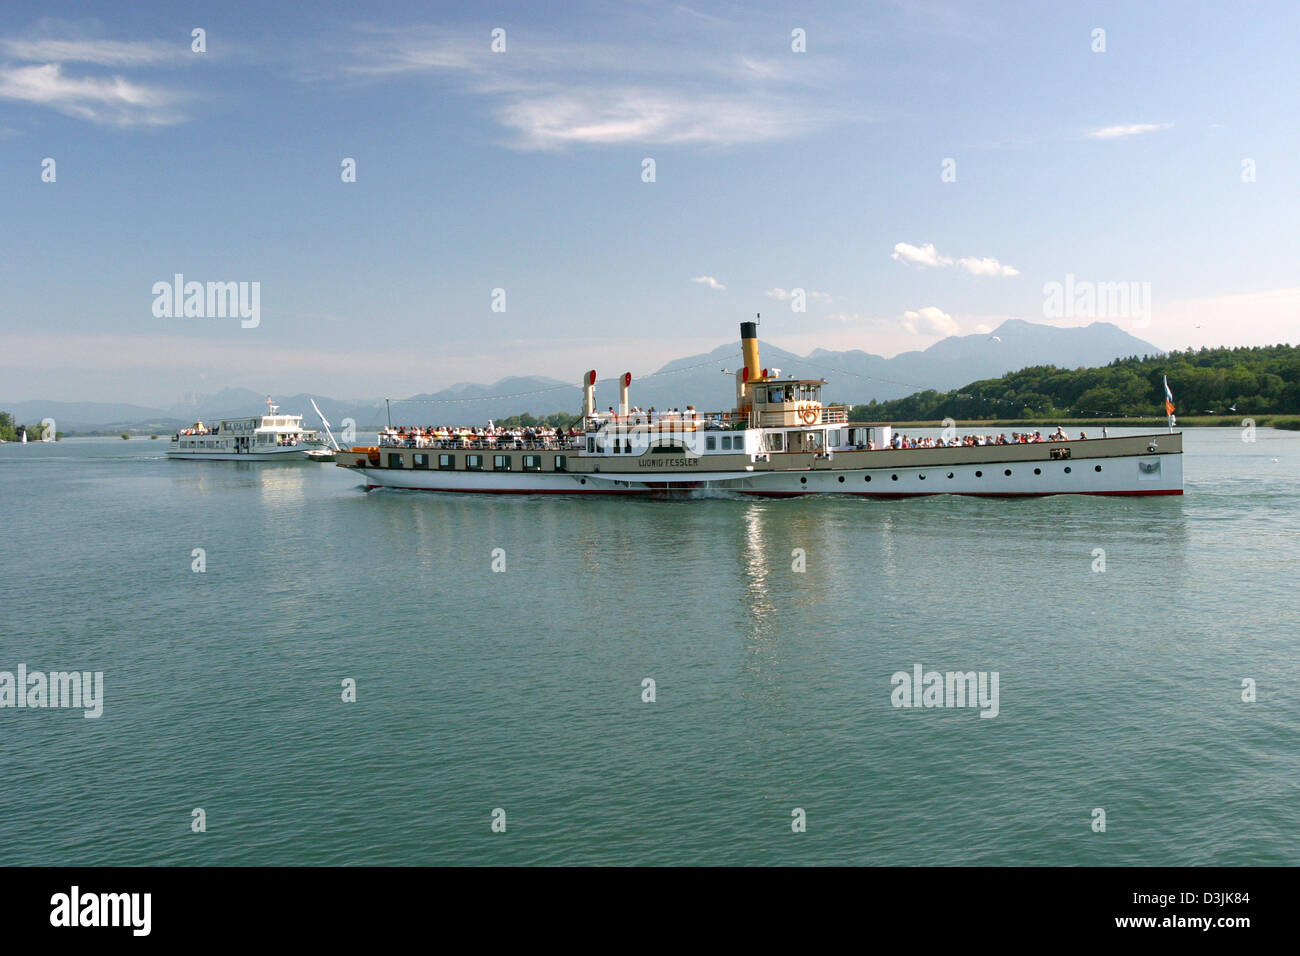 (dpa) - The paddle wheel steamer 'Ludwig Fessler' pictured on the Chiemsee lake between the Herreninsel - Stock Image